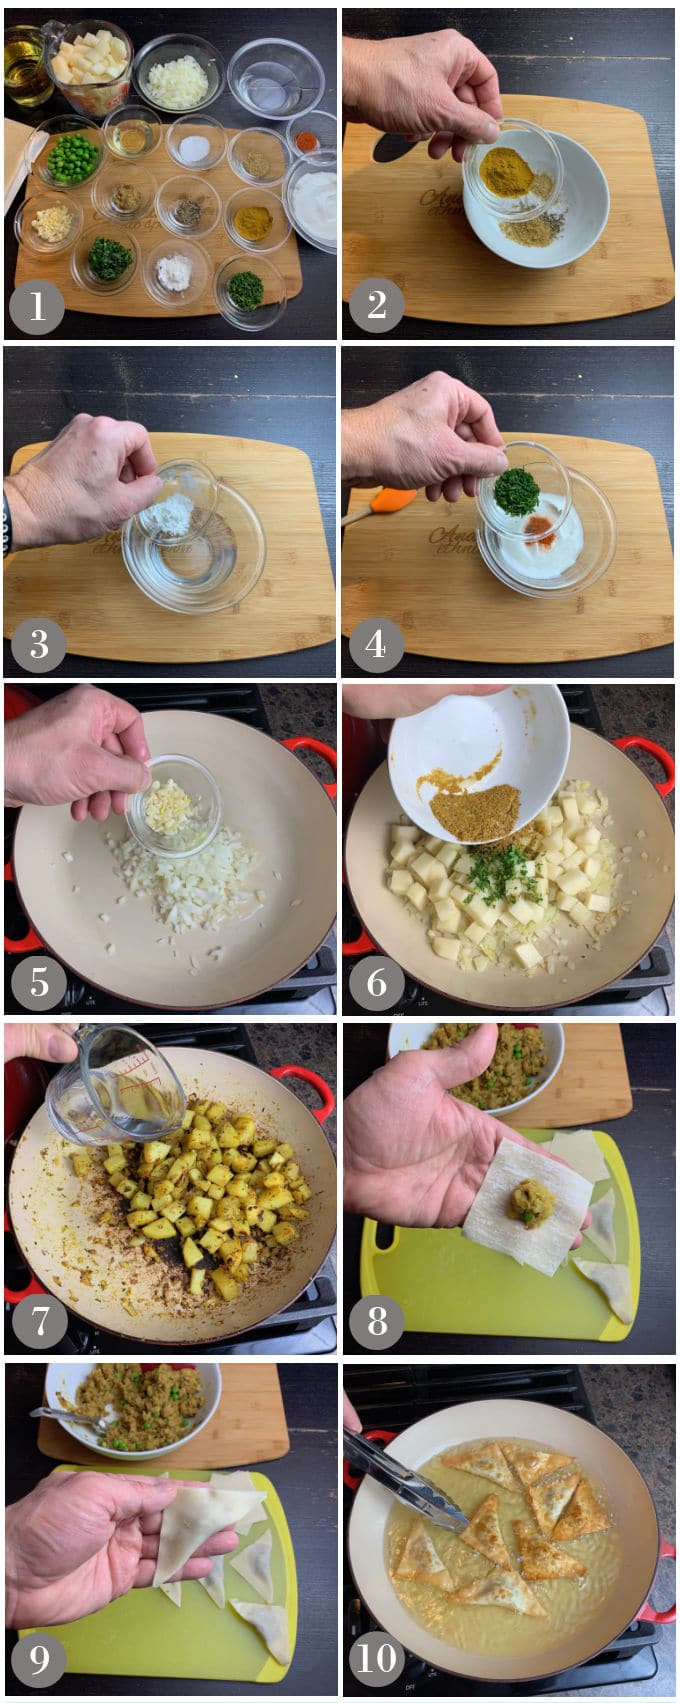 A collage of photos showing the steps to make vegetarian samosas with wonton wrappers.